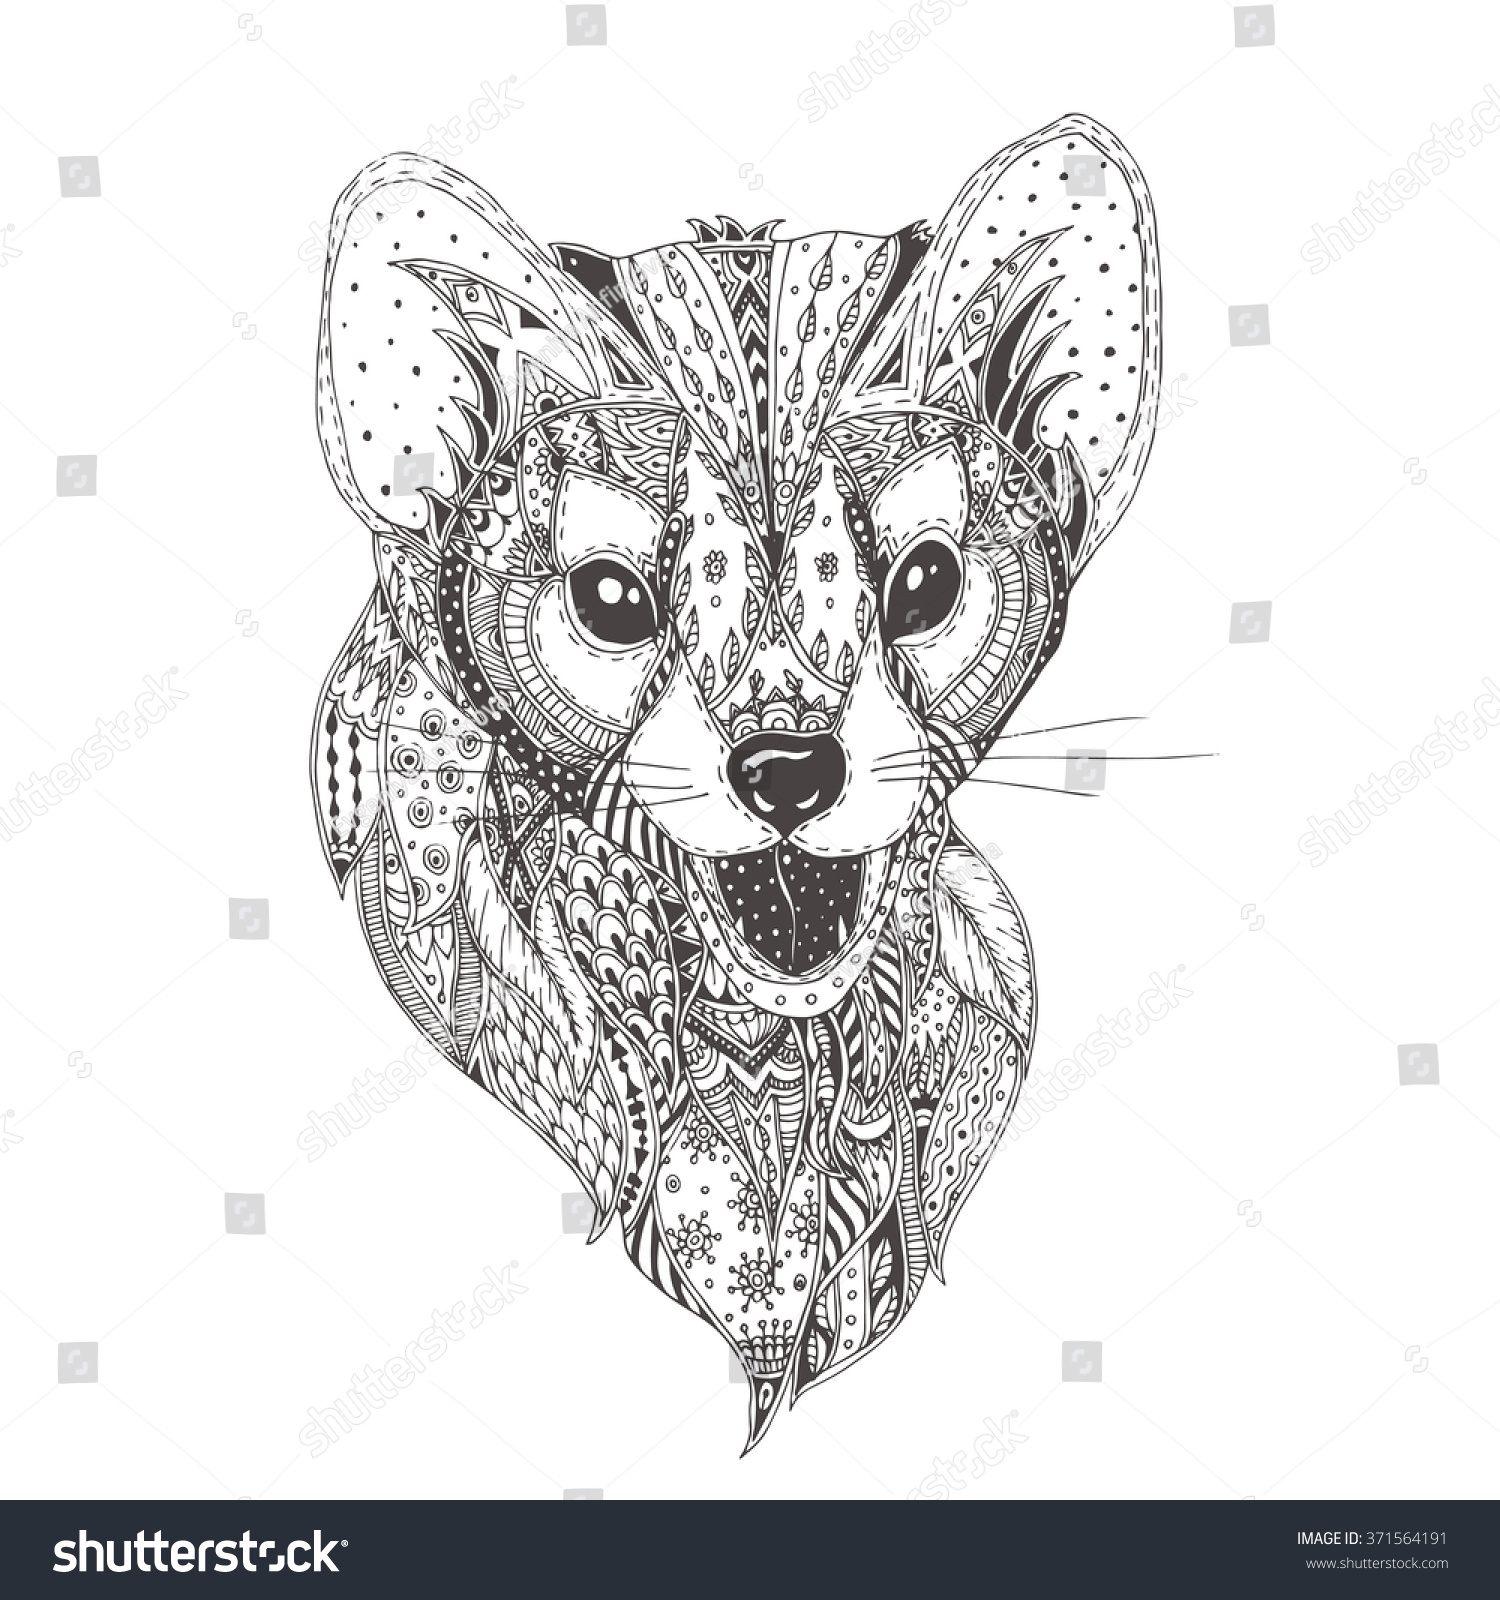 Uncategorized Ferret Coloring Pages handdrawn ferret ethnic floral doodle pattern stock vector hand drawn with coloring page zendala design